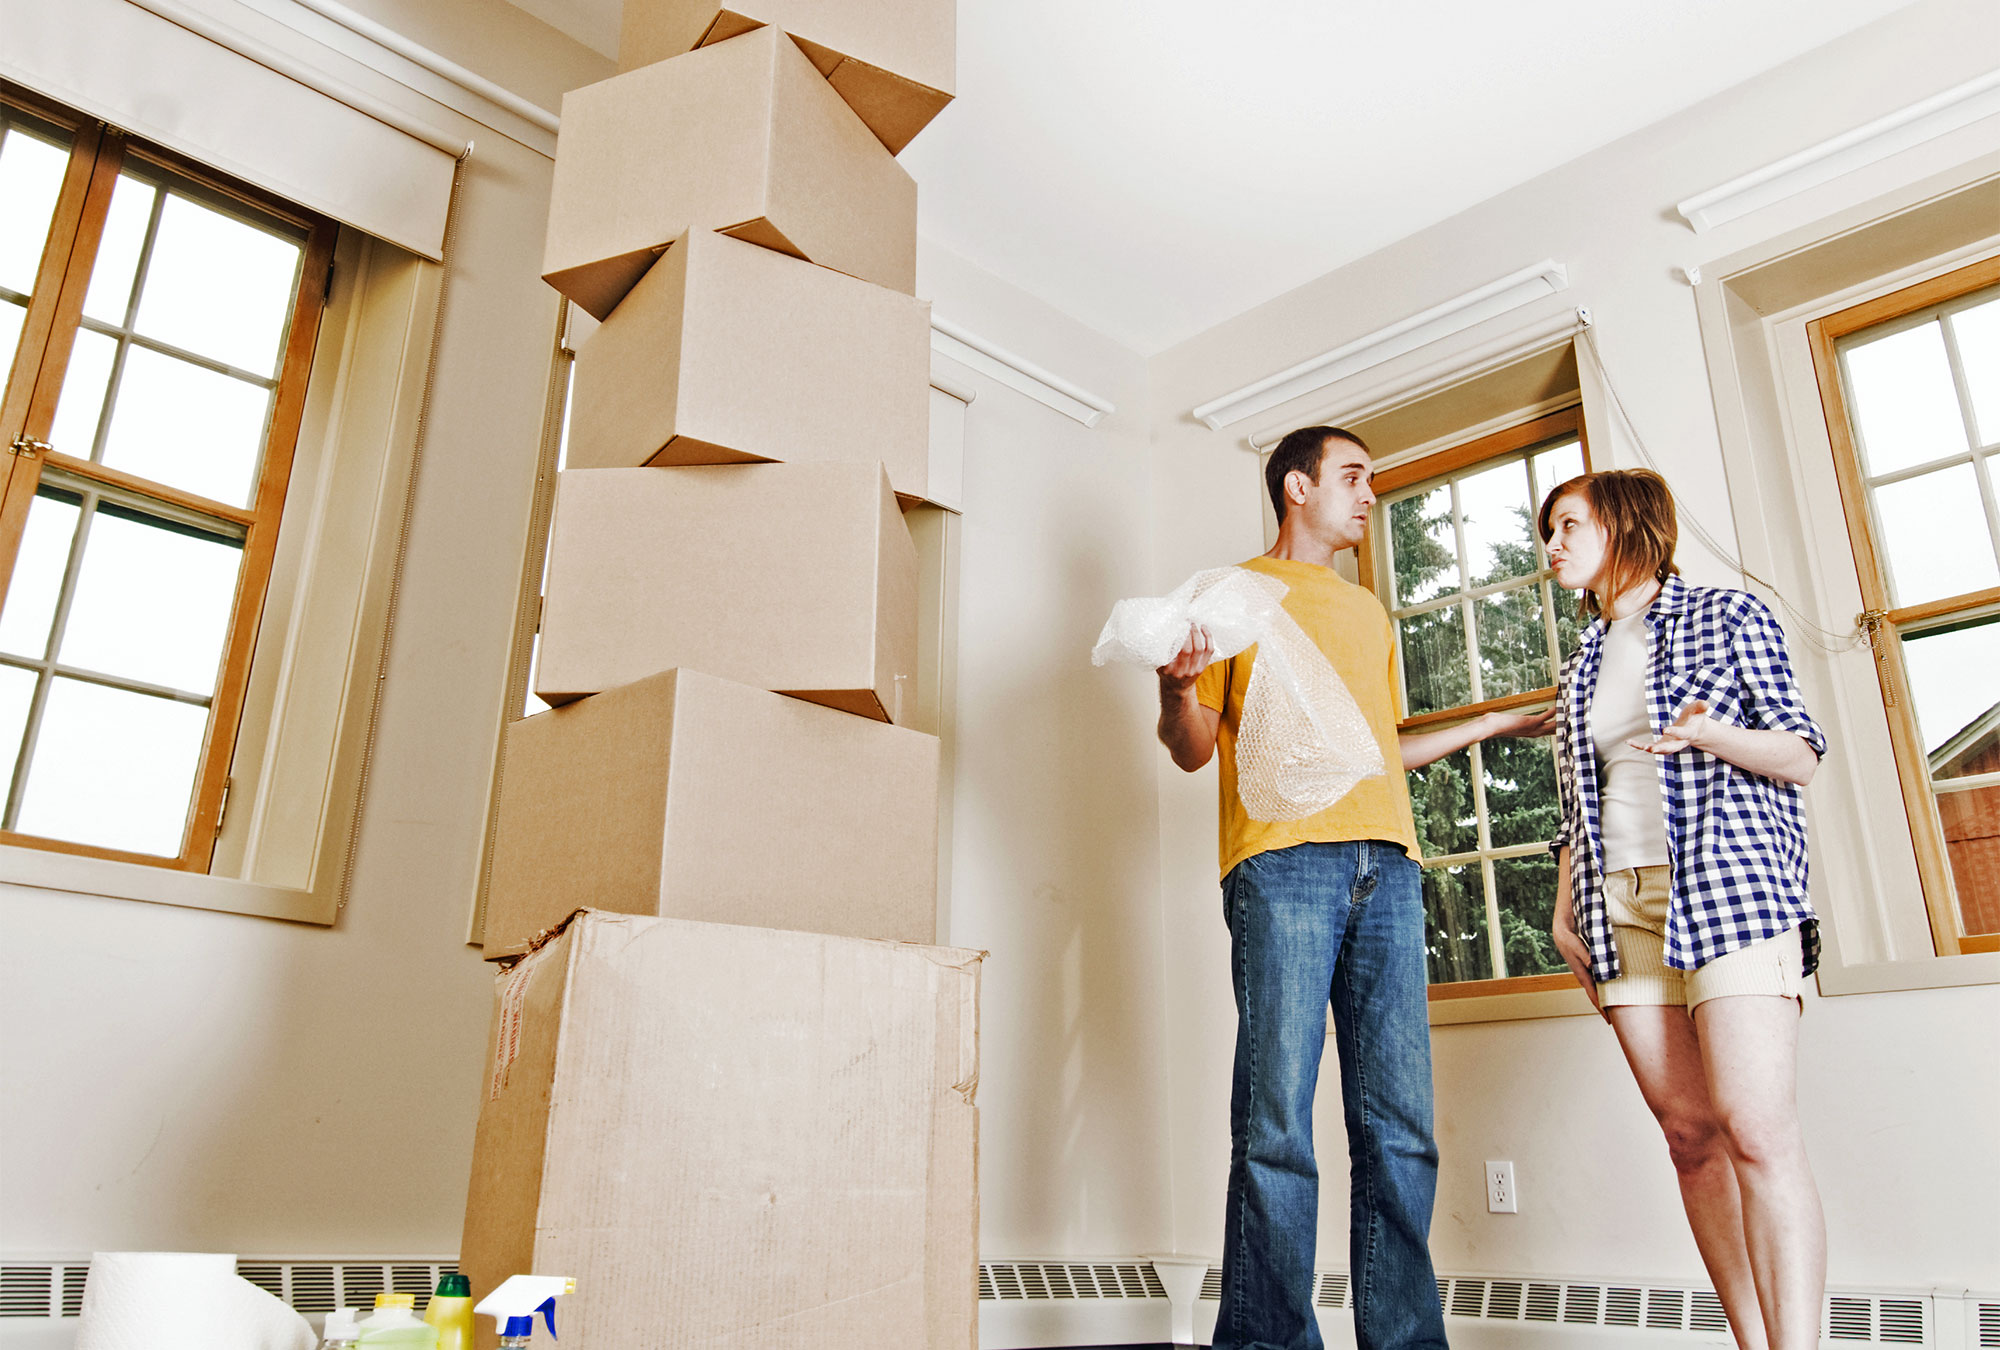 Things You Can Avoid Paying For While Moving